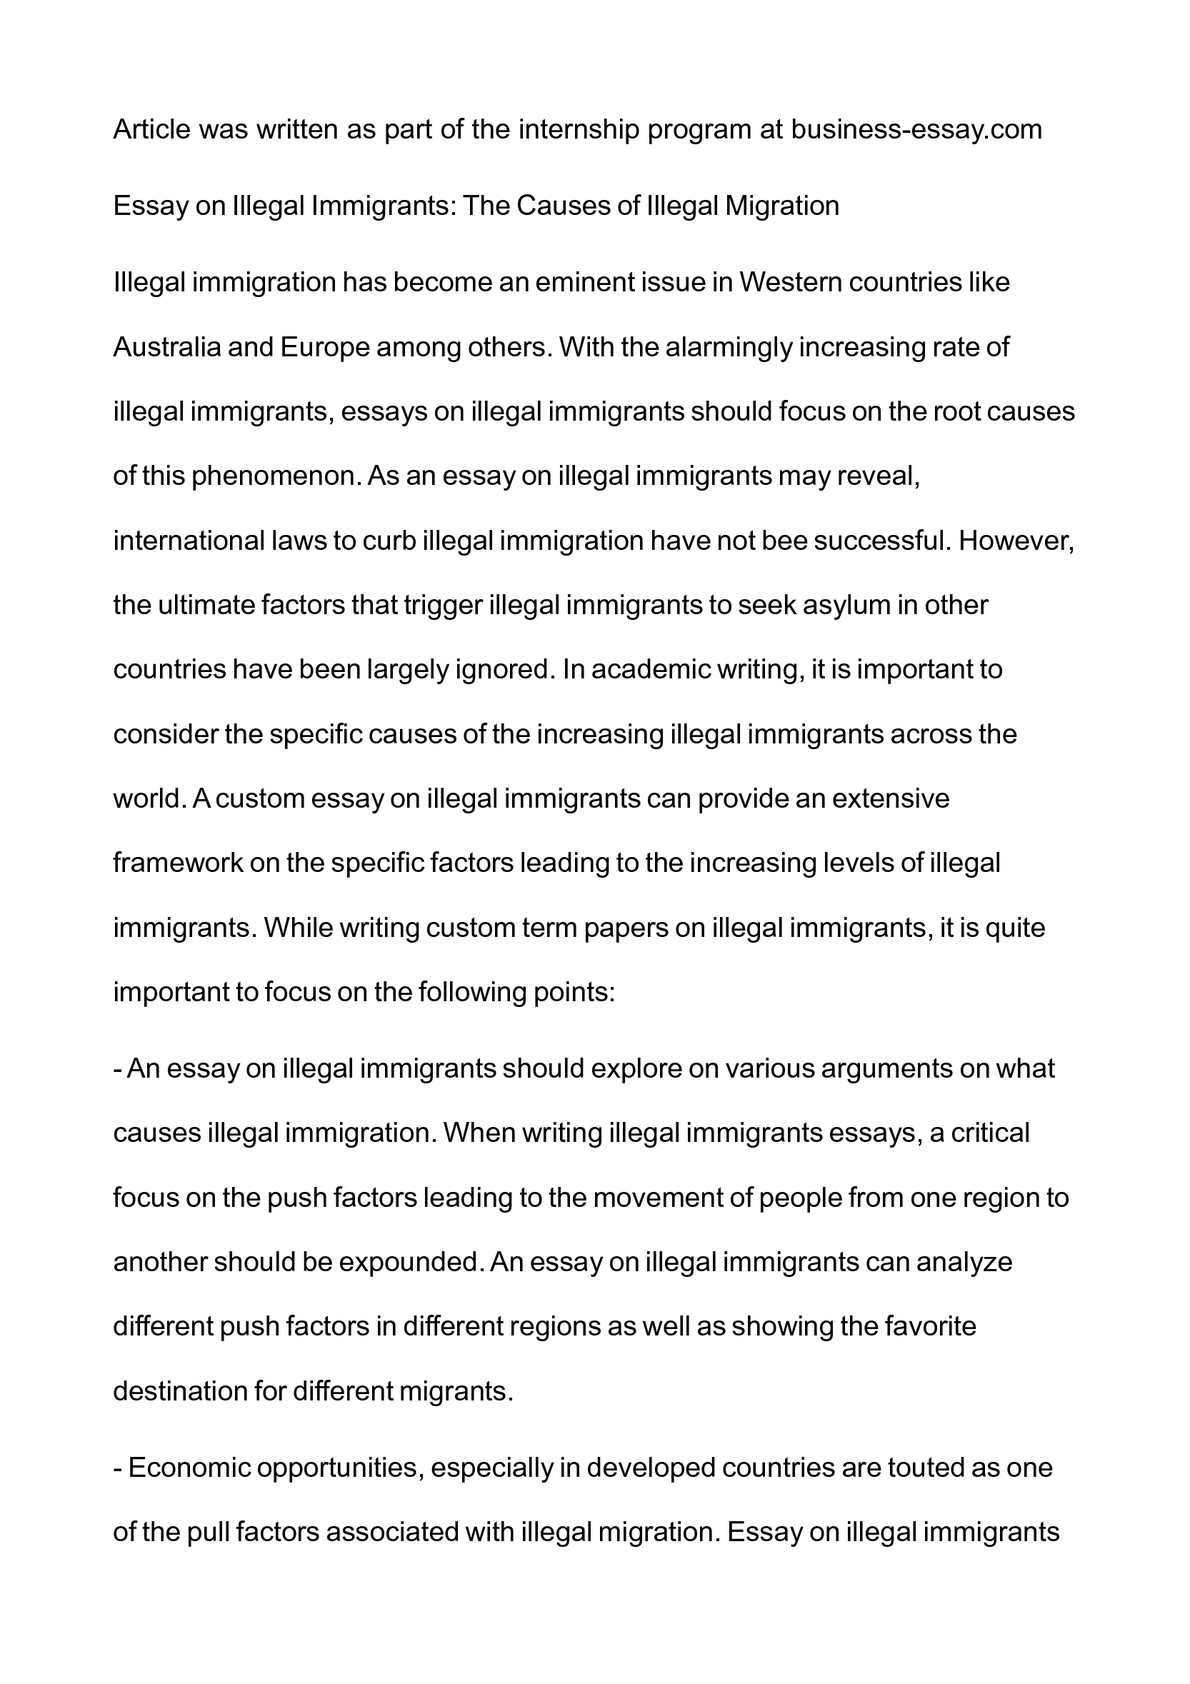 essay on illegal immigration calamatildecopyo essay on illegal immigrants the causes of illegal migration